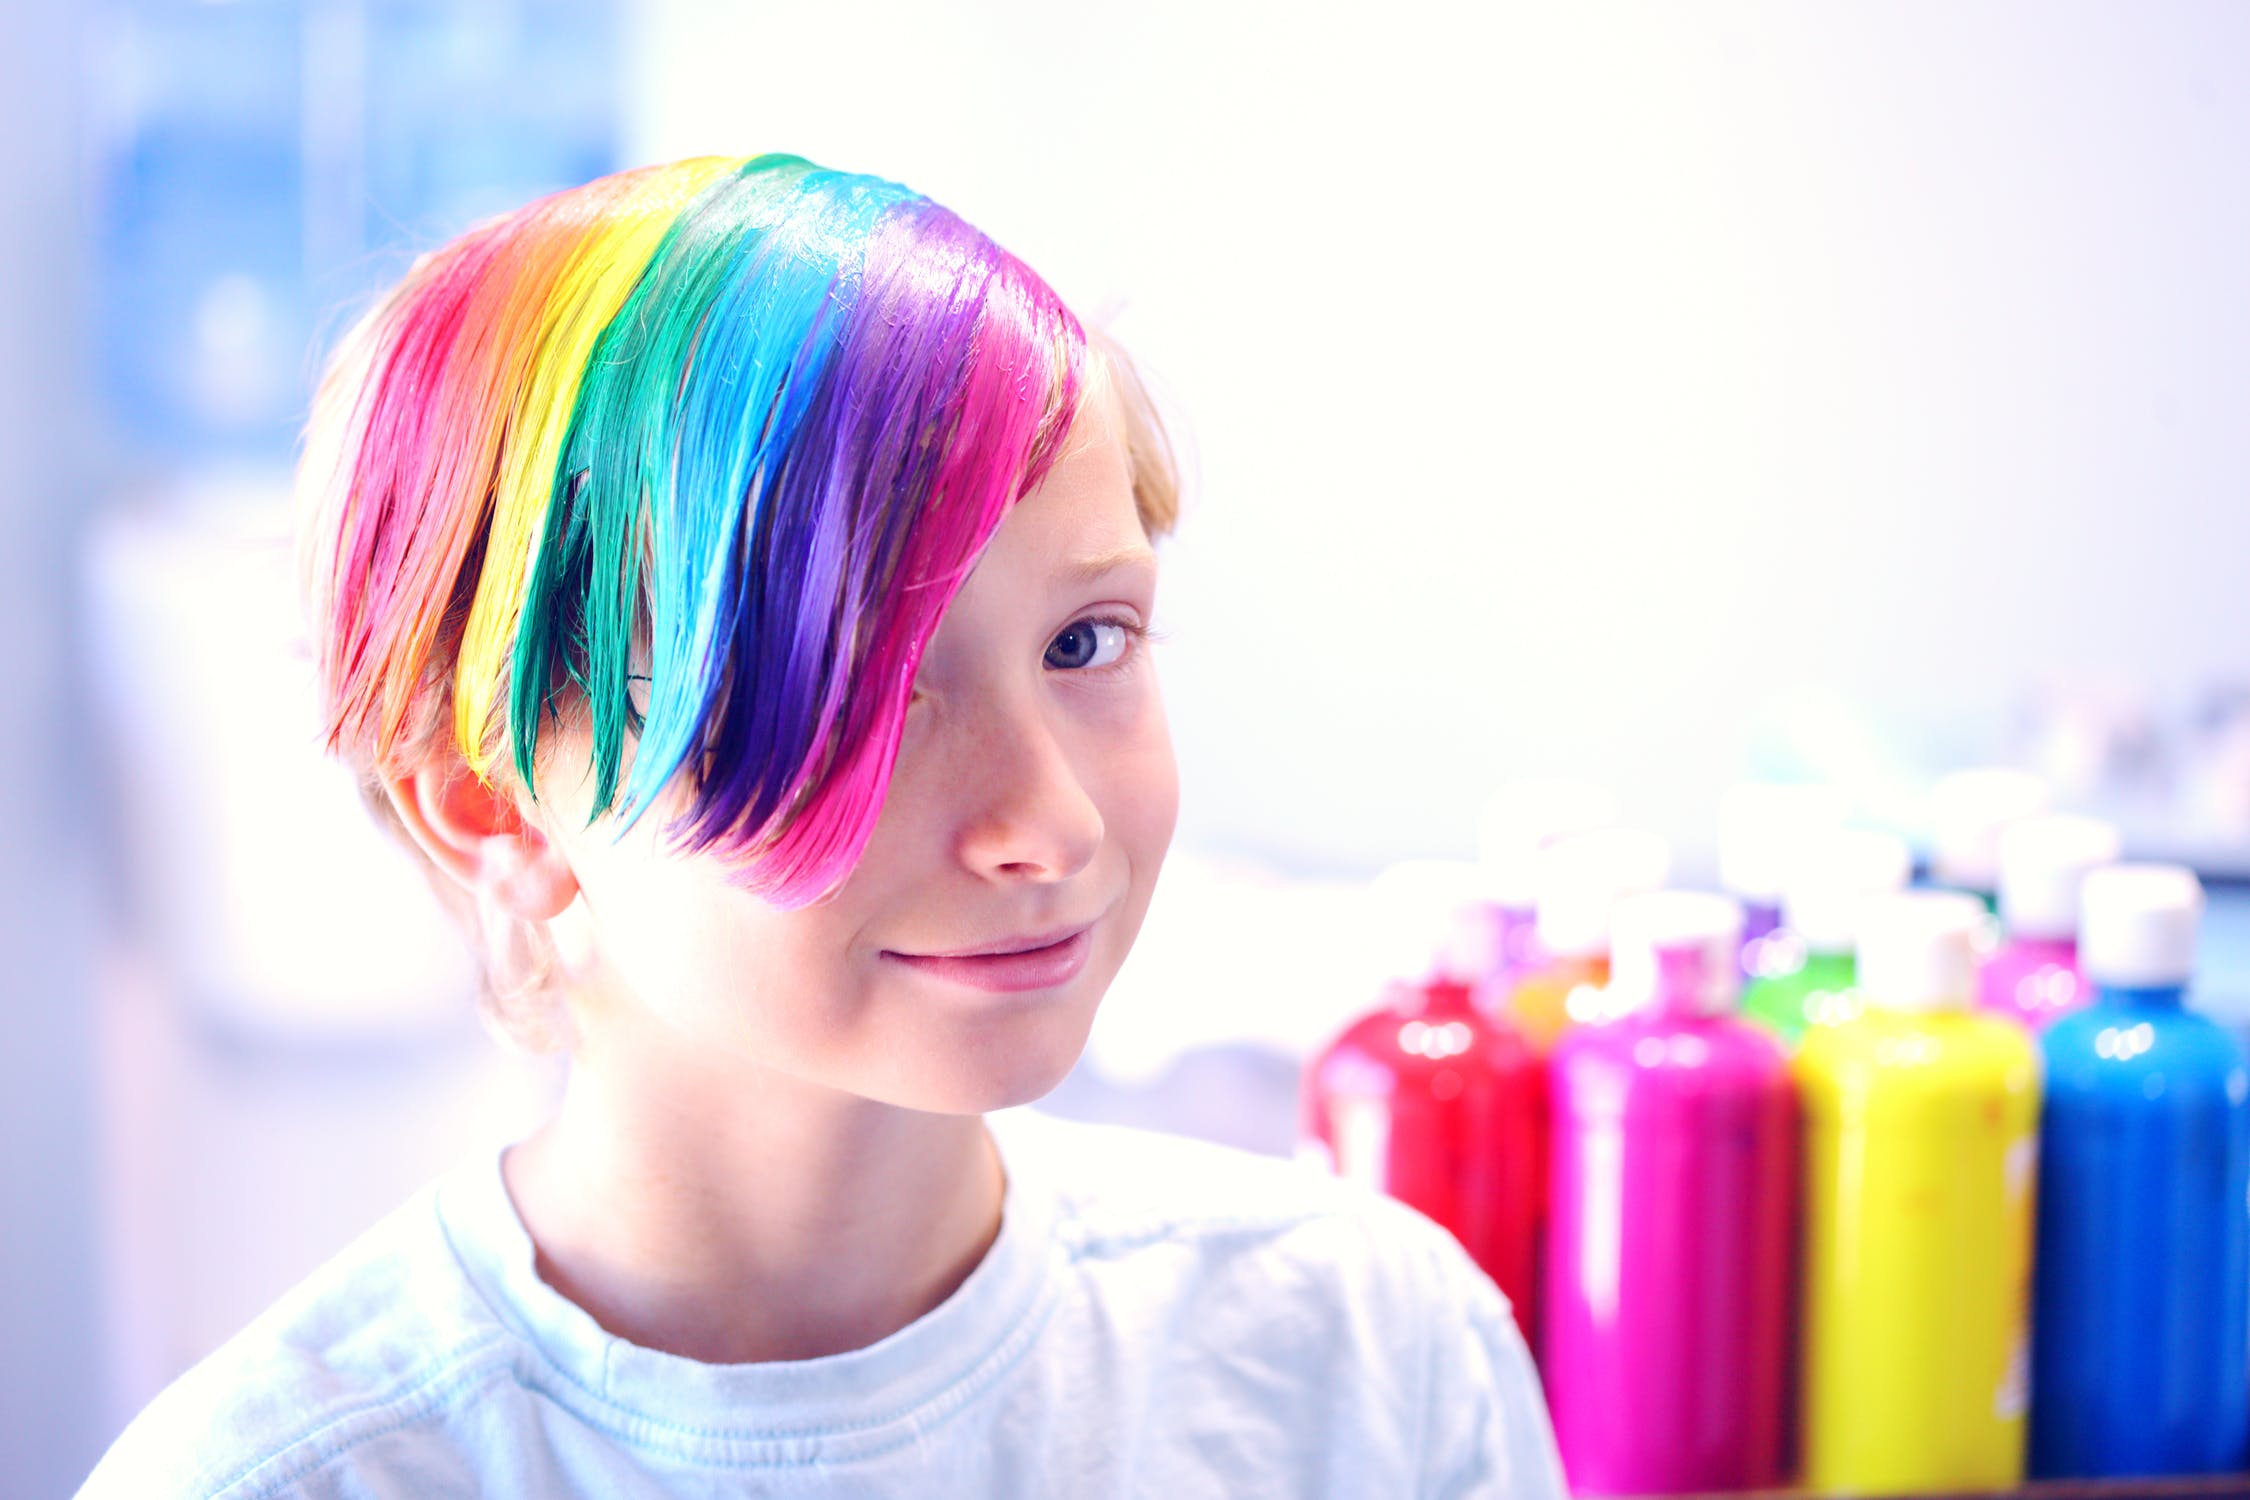 This LGBTQ+ boy has painted his hair with the very, very, very silly LGBTQ+ flag...………...